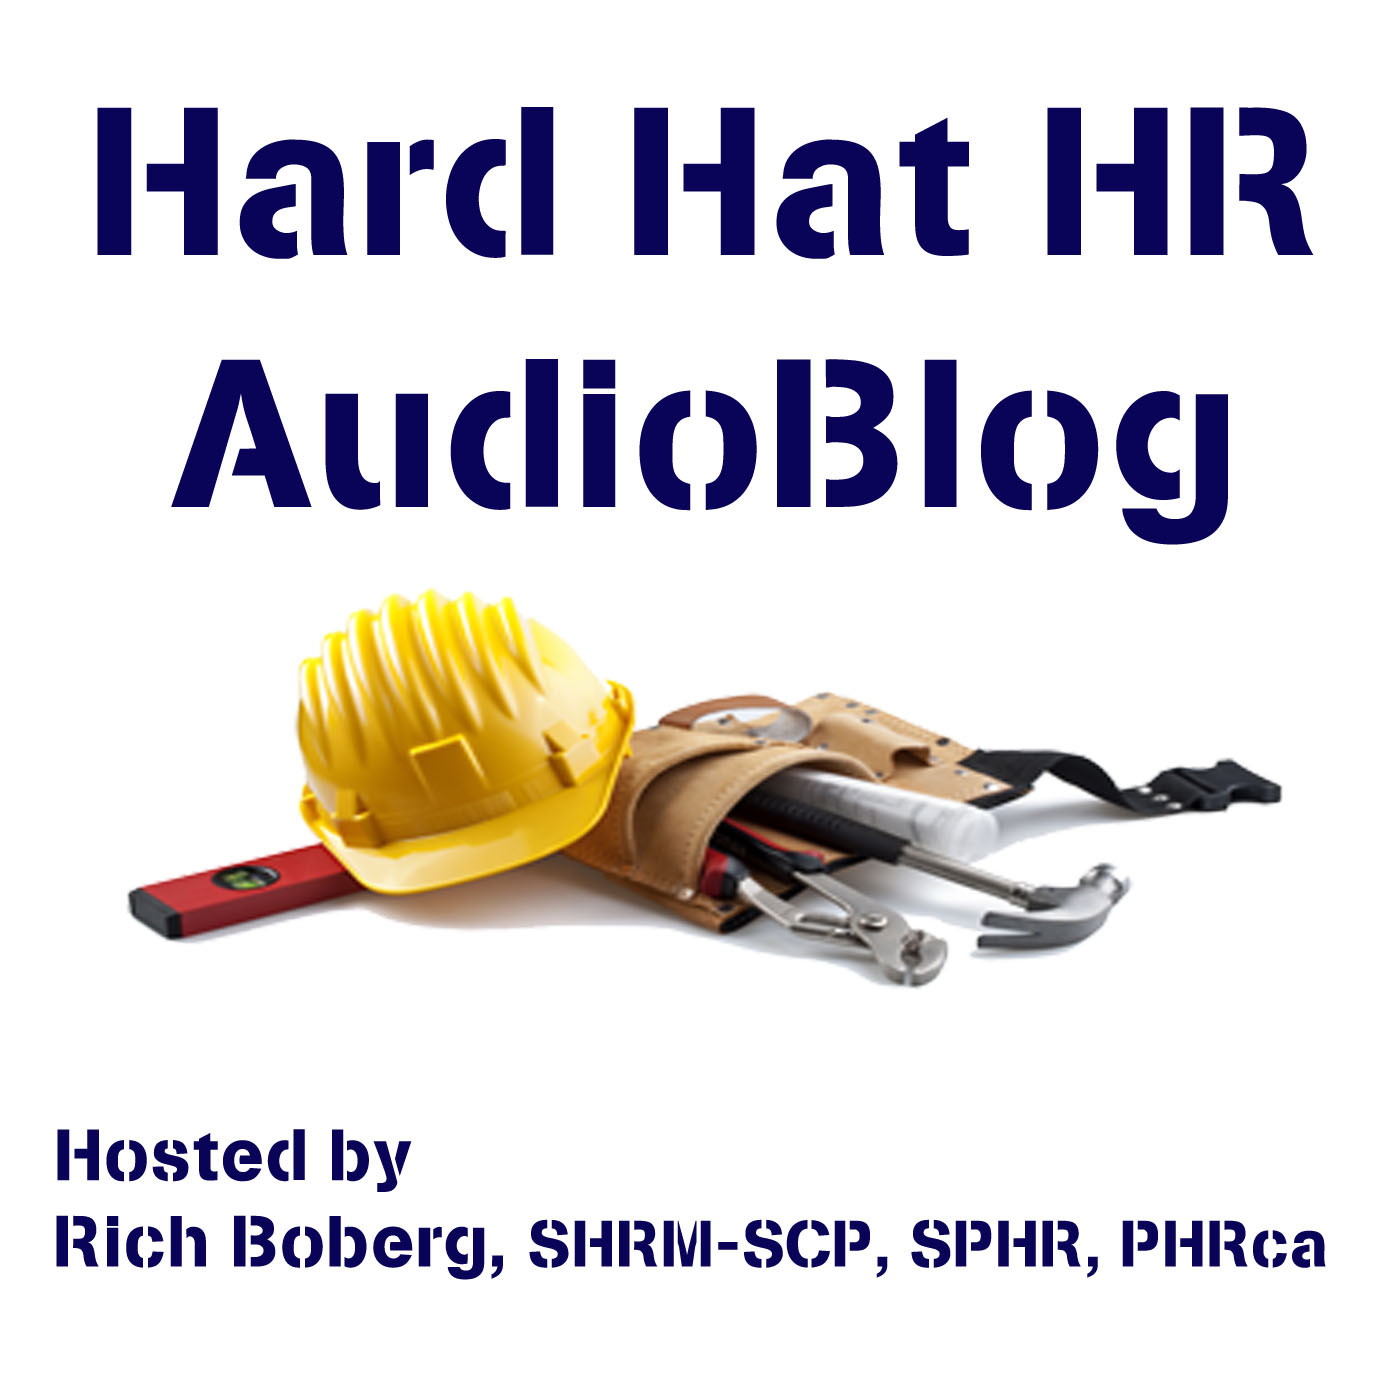 Hard Hat HR AudioBlog | Tools for Building Great HR show art